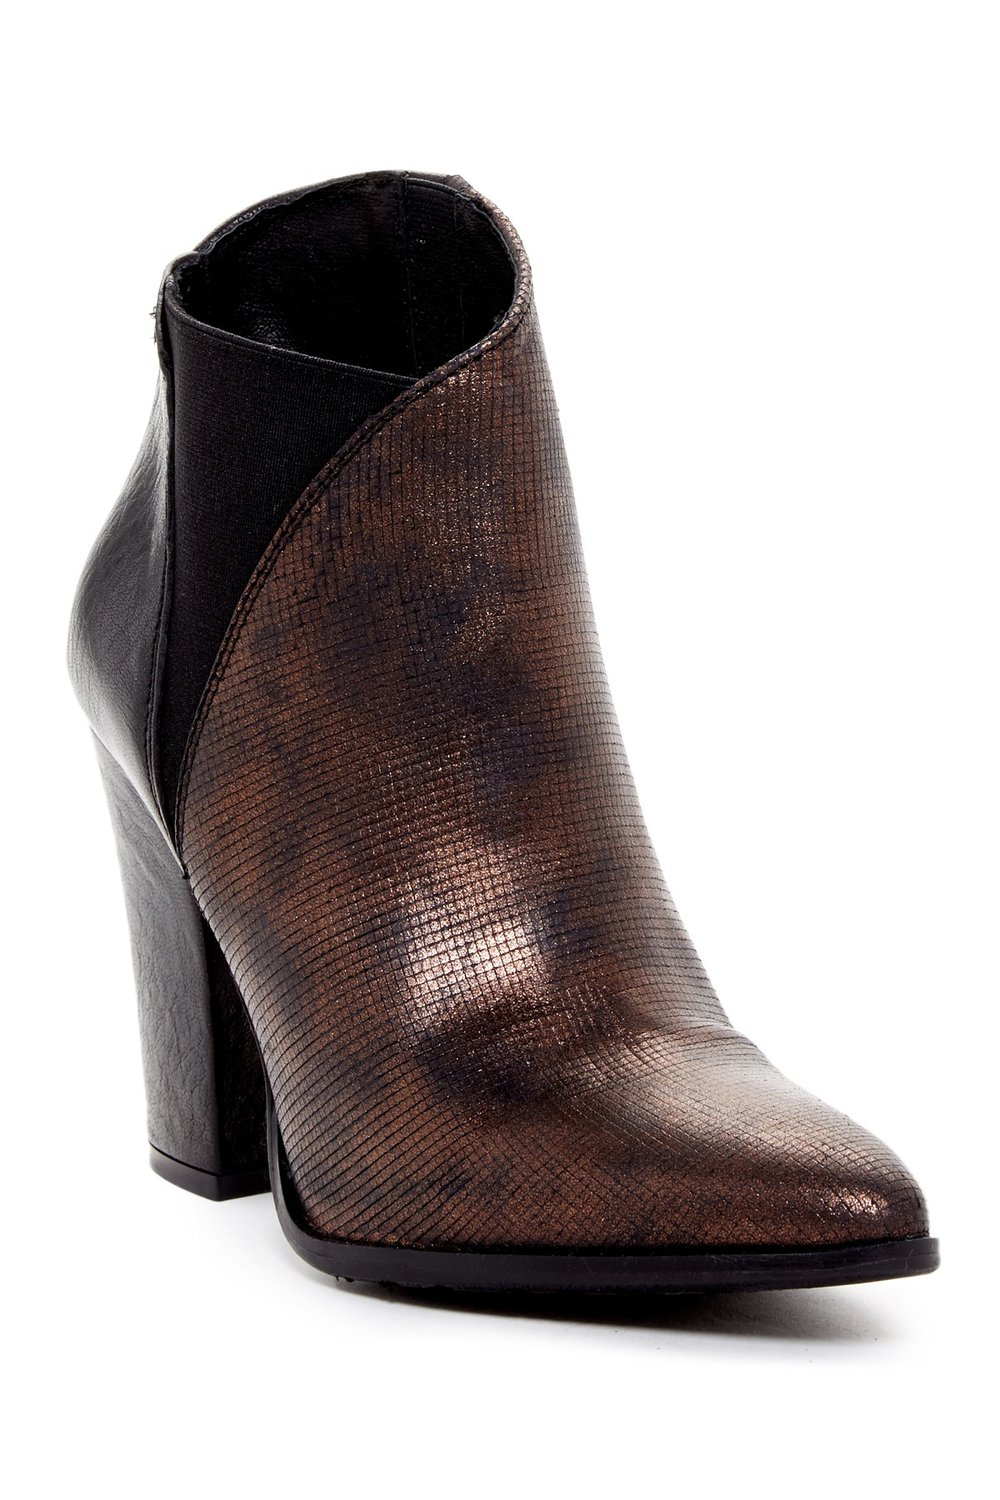 Charles David Charla Bootie. Nordstrom Rack. Was: $279 Now: $169.